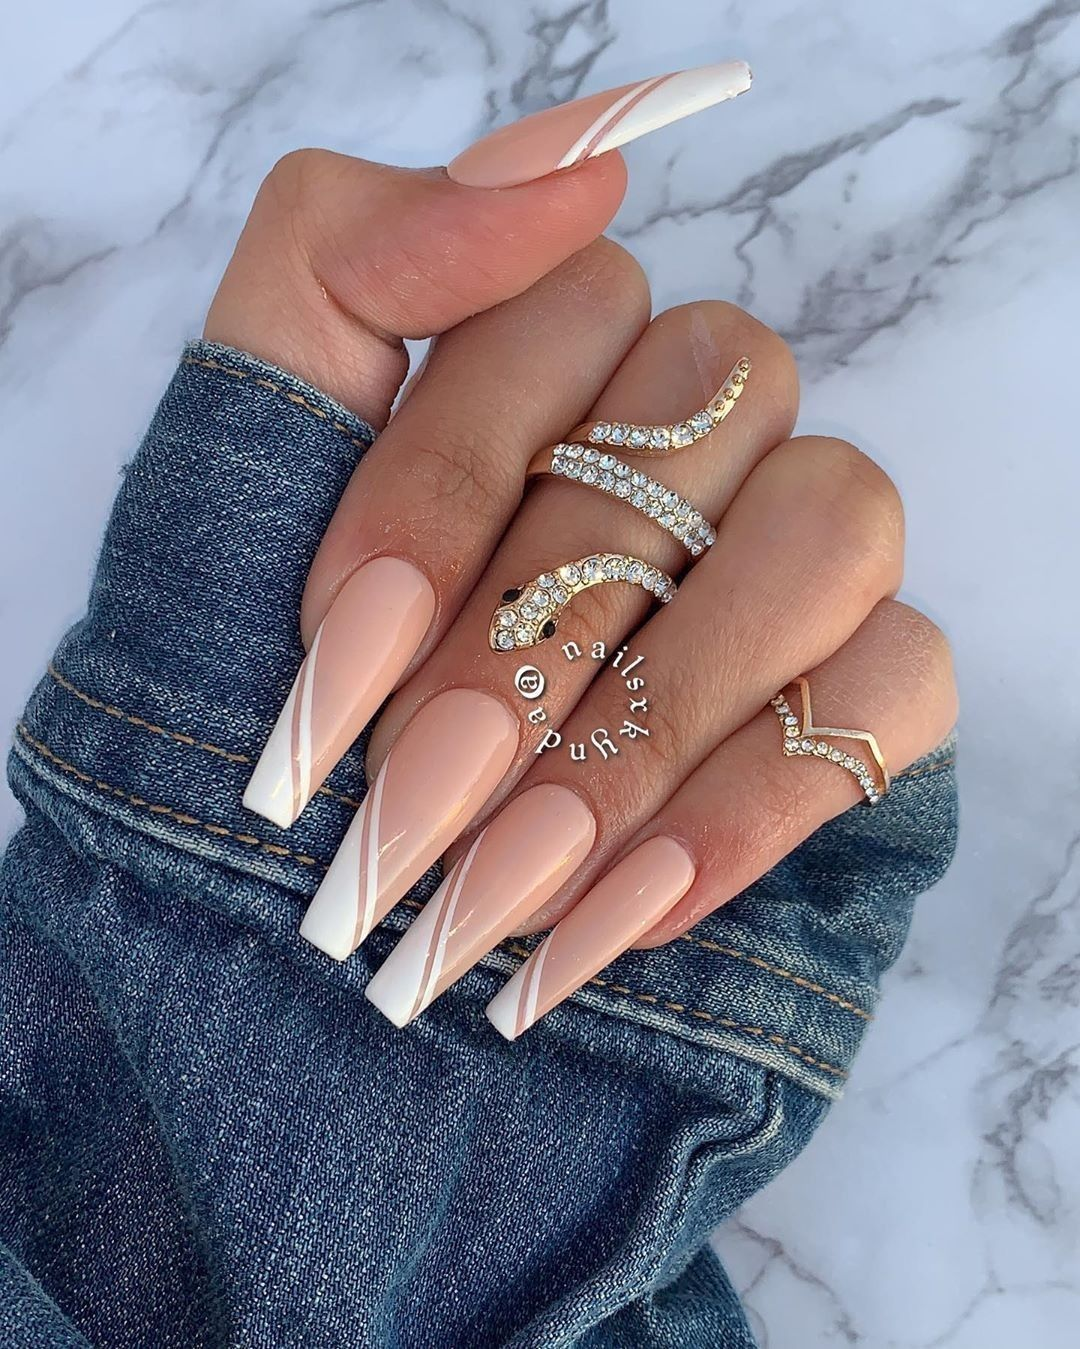 Follow Me Keandrakirkland For More Content In 2020 White Tip Acrylic Nails Long Acrylic Nails White Tip Nails